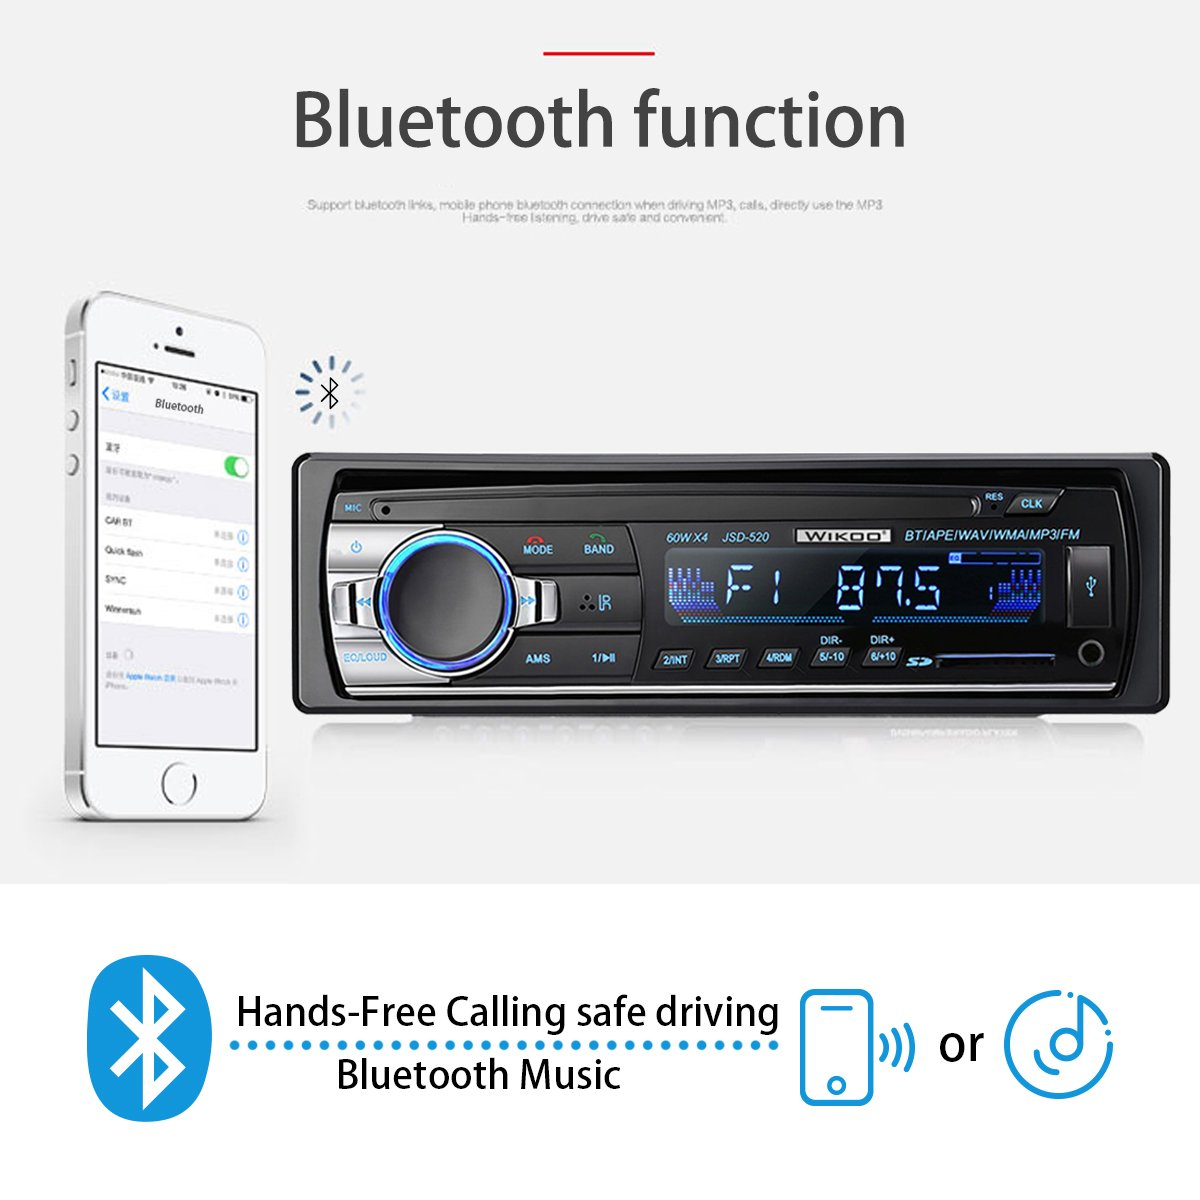 Digital Car Stereo - Wikoo Single-Din Bluetooth Car Stereo In Dash with Remote Control - Receivers USB/SD/Audio - MP3 Player/FM Radio, Supports Hands Free Calling by Wikoo (Image #2)